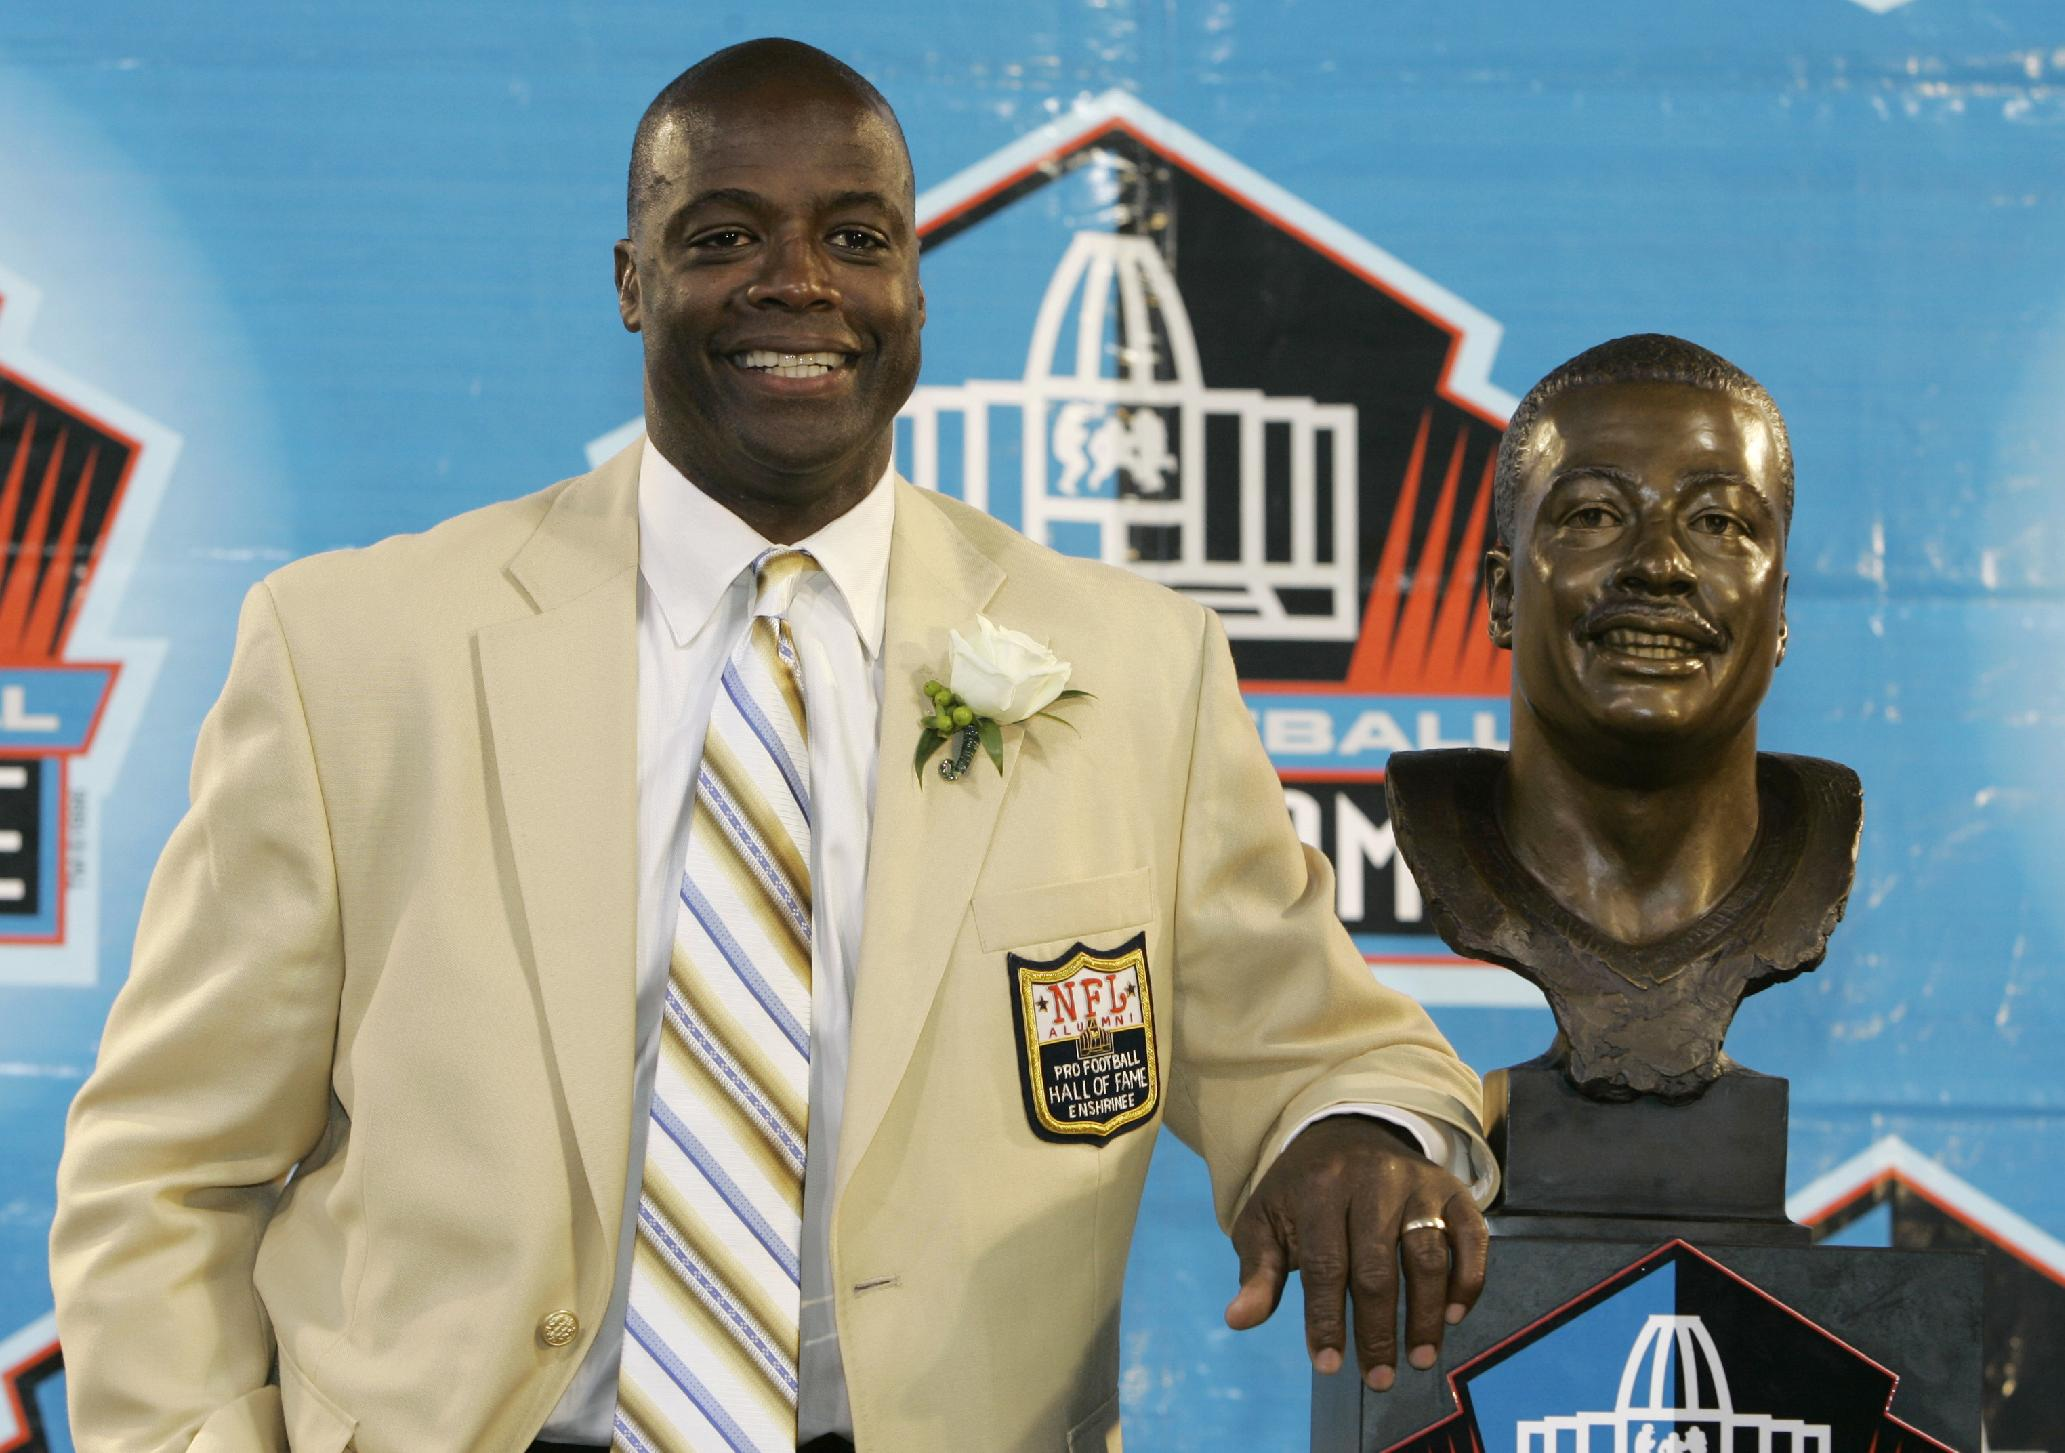 In this Aug. 2, 2008 file photo, former Washington Redskins cornerback Darrell Green stands next to his bronze bust at the Pro Football Hall of Fame in Canton, Ohio. The former Redskins cornerback looks around today's NFL and sees a lack of talent at his old job